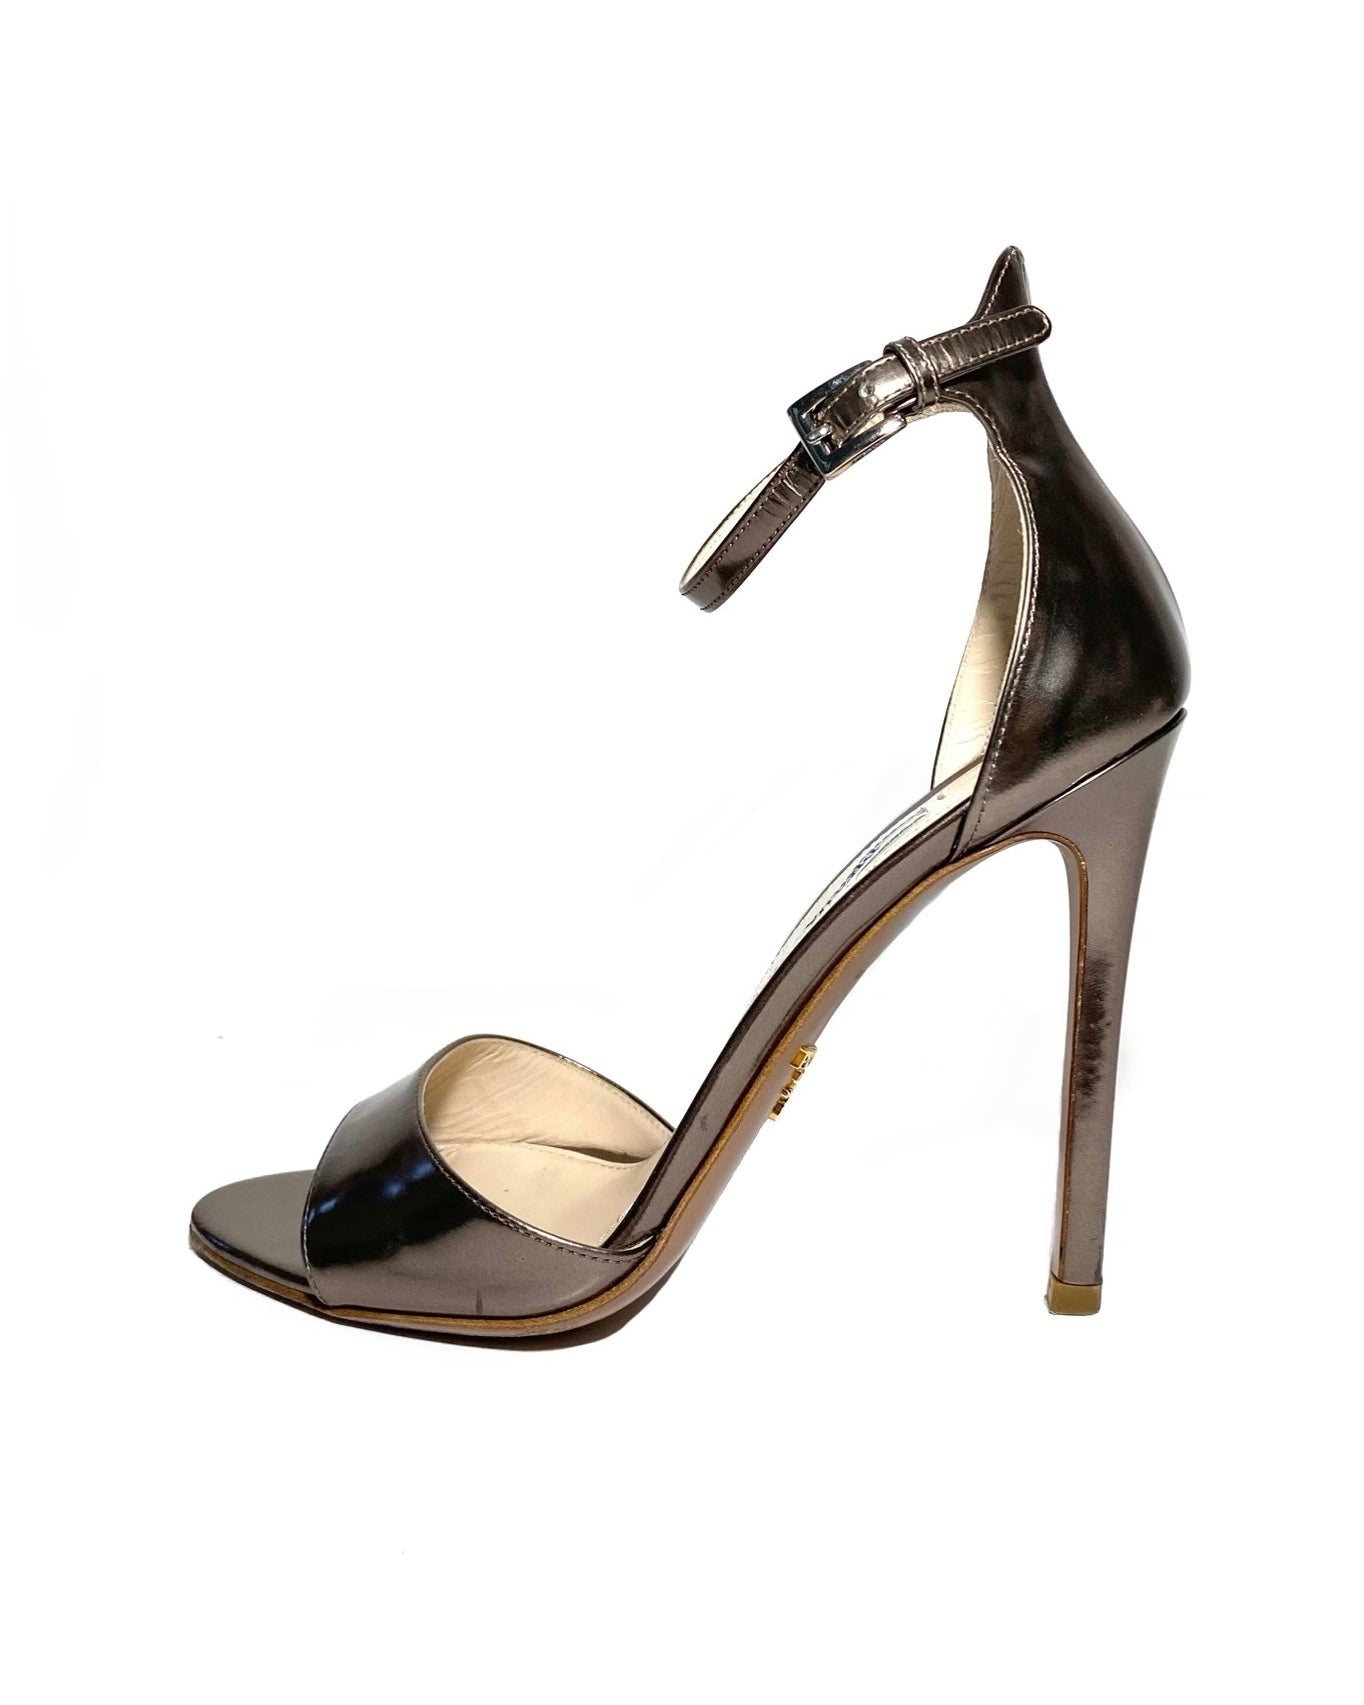 Metallic Ankle Strap Sandals 36